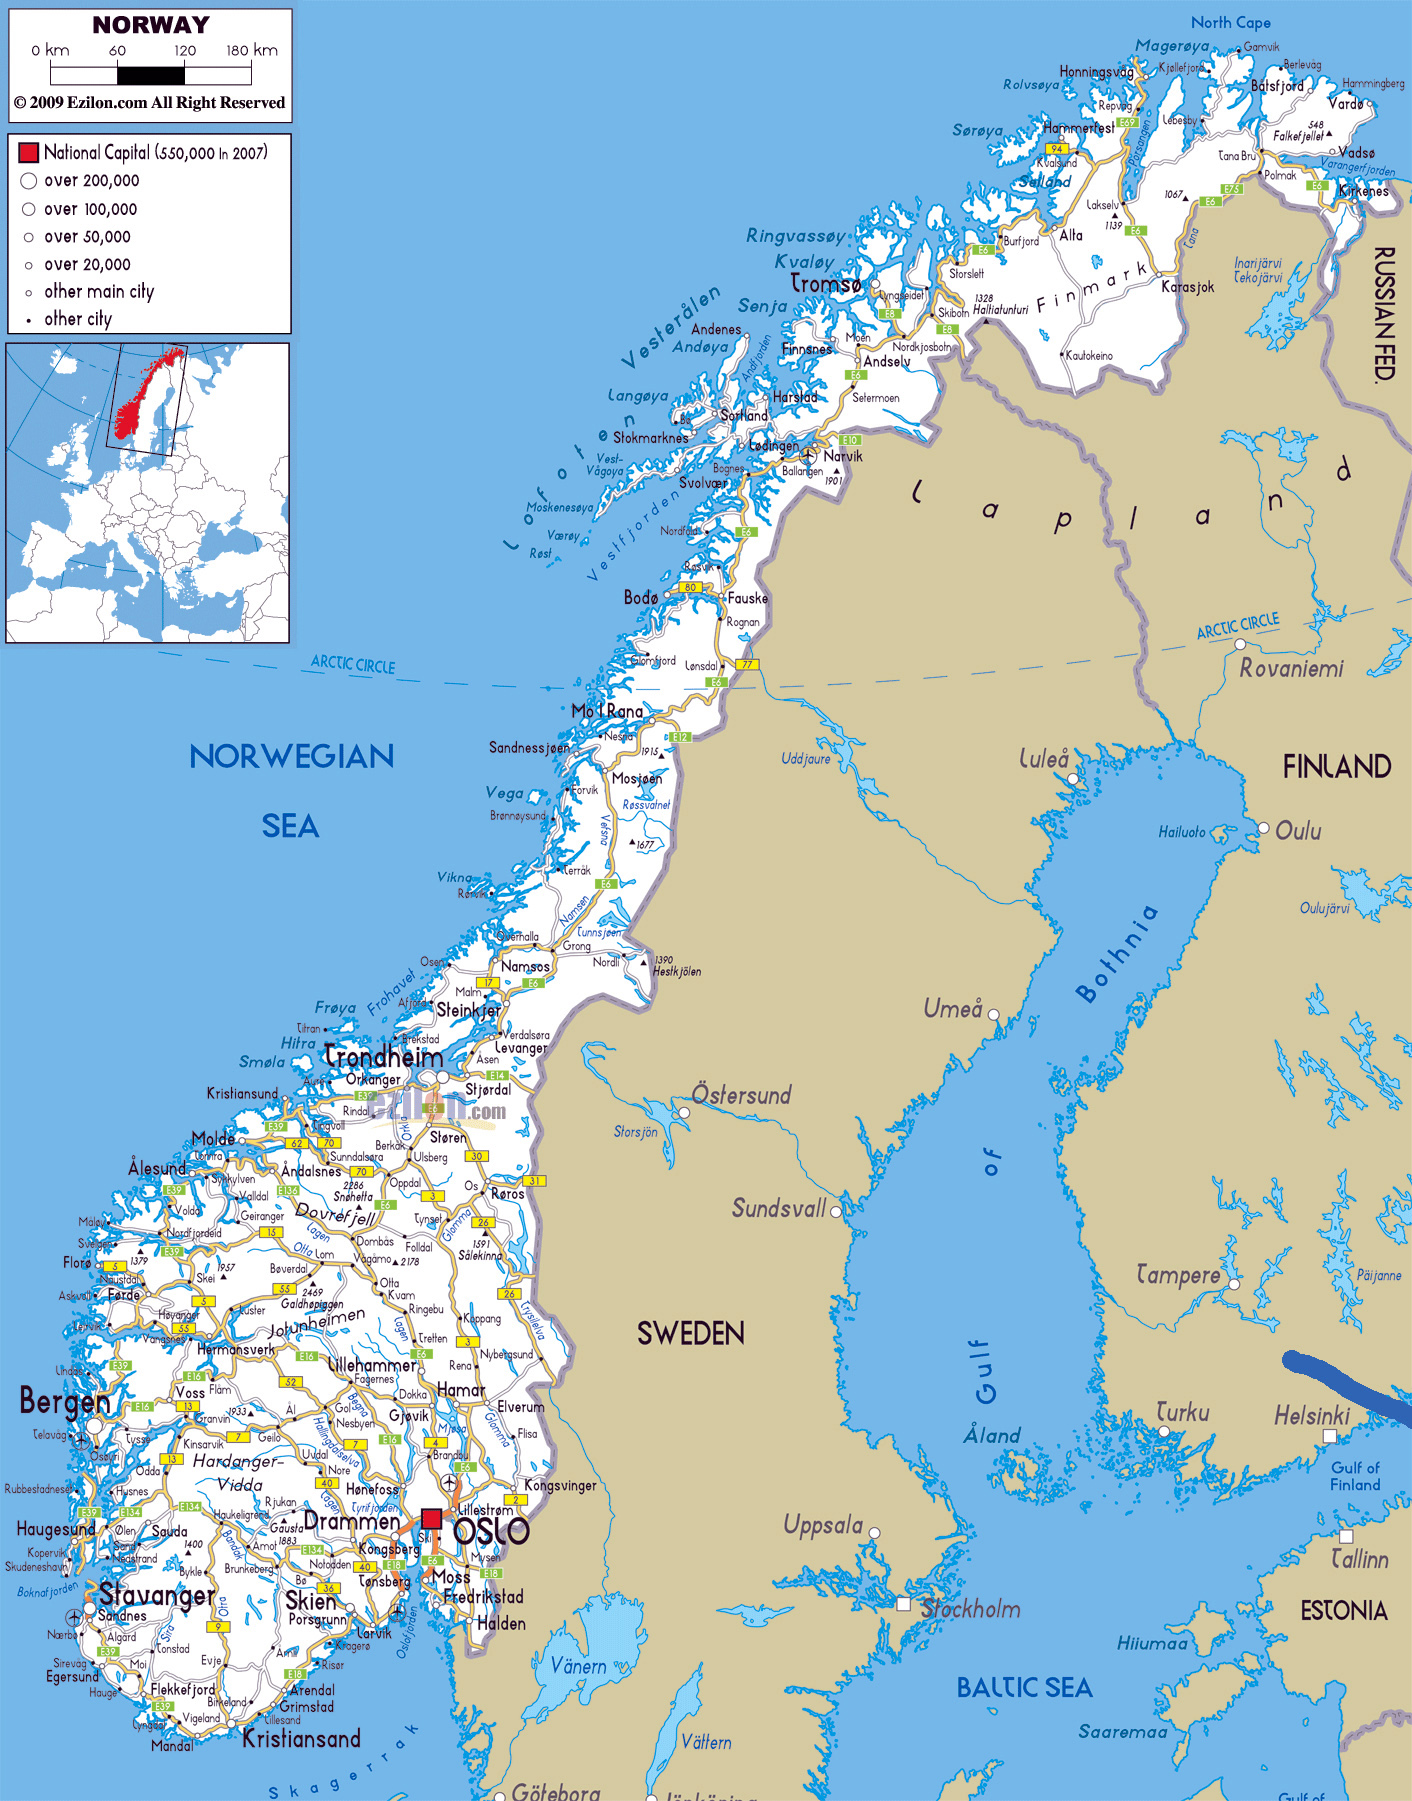 Norway On Map Of Europe.Large Road Map Of Norway With Cities And Airports Norway Europe